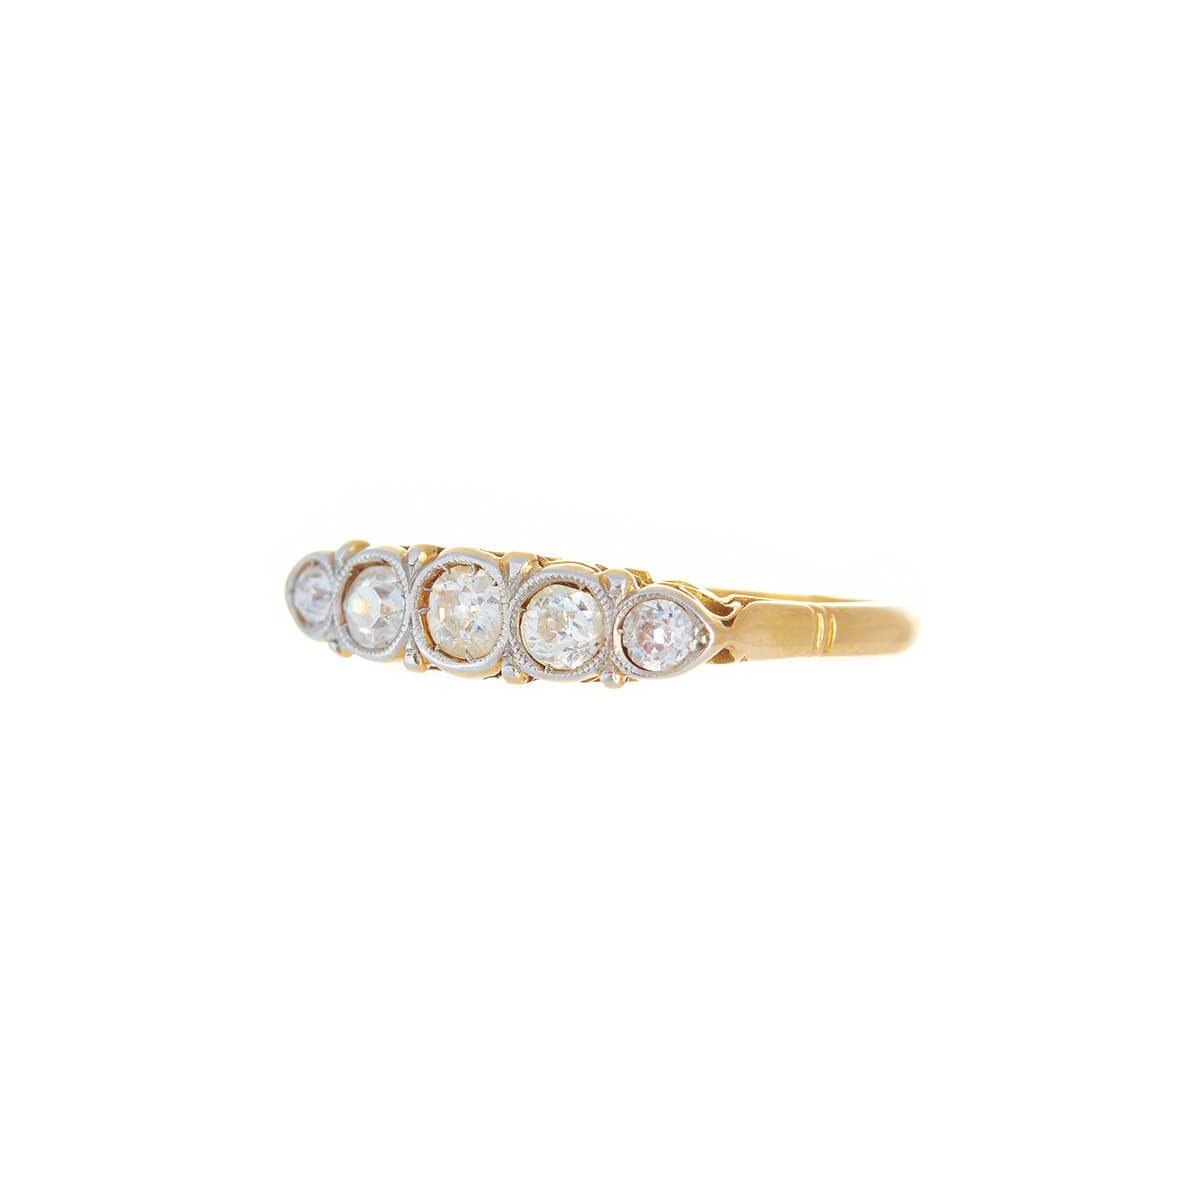 Antique Art Deco 5 Diamond White And Yellow Gold 18kt Ring